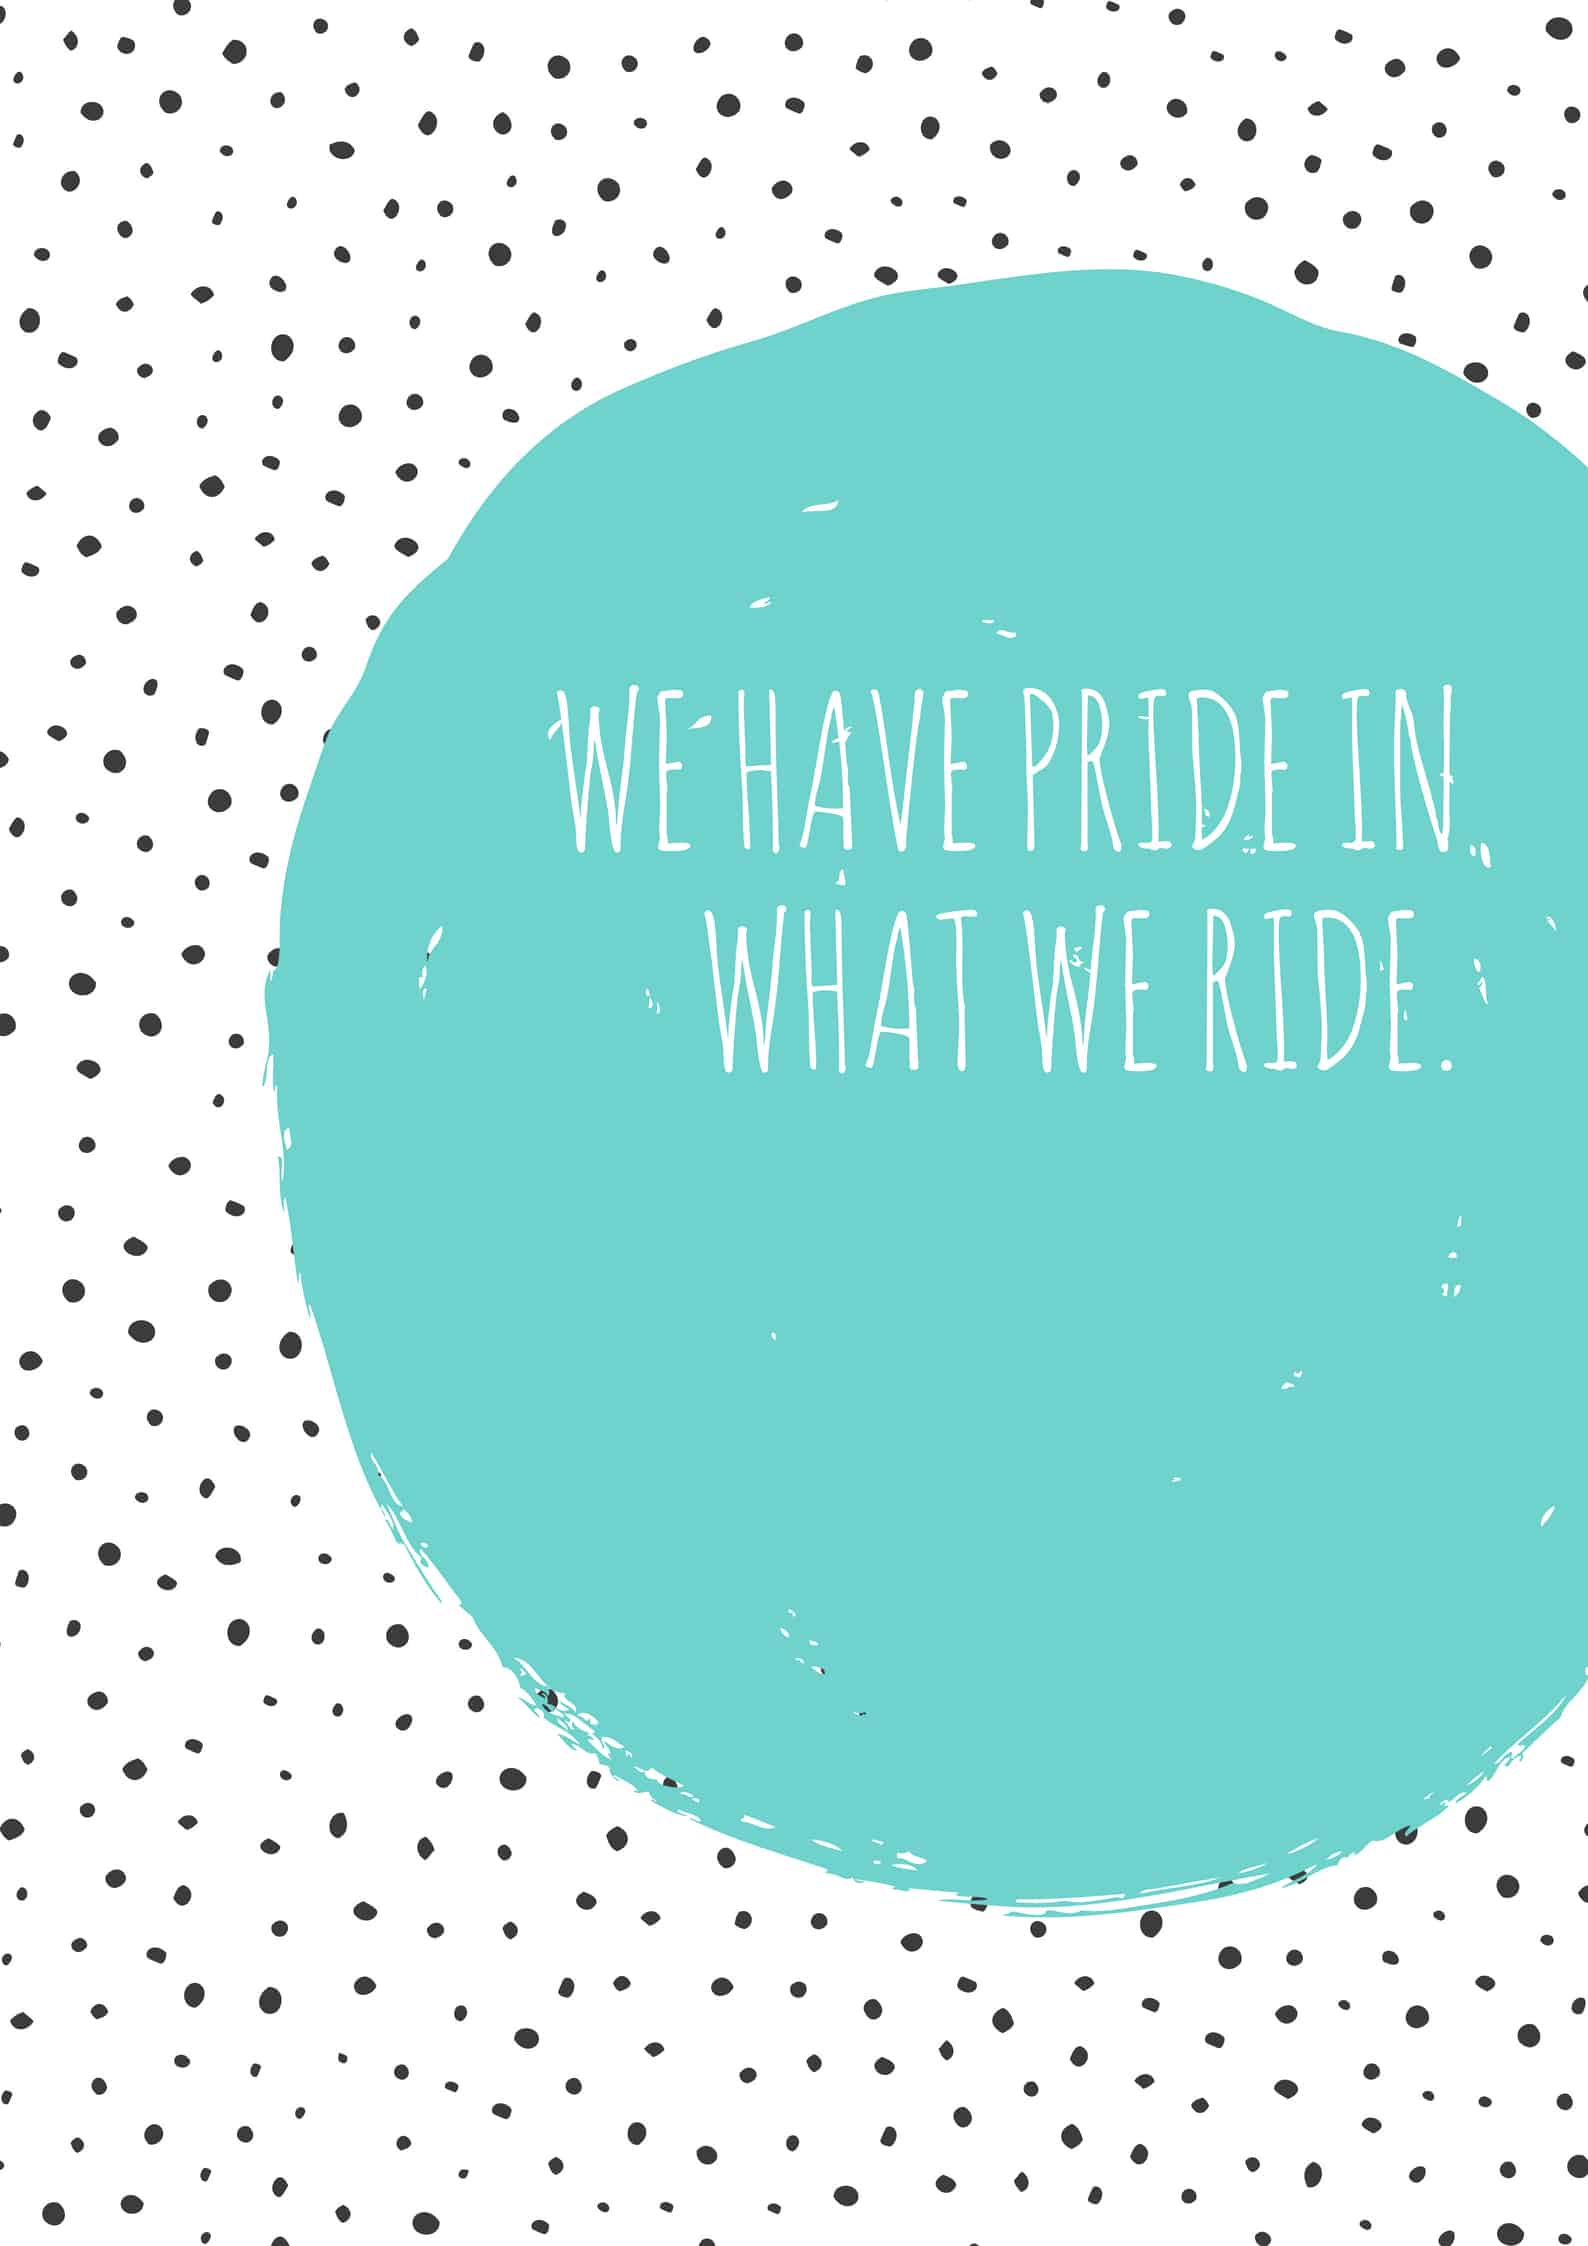 We have pride in what we ride.